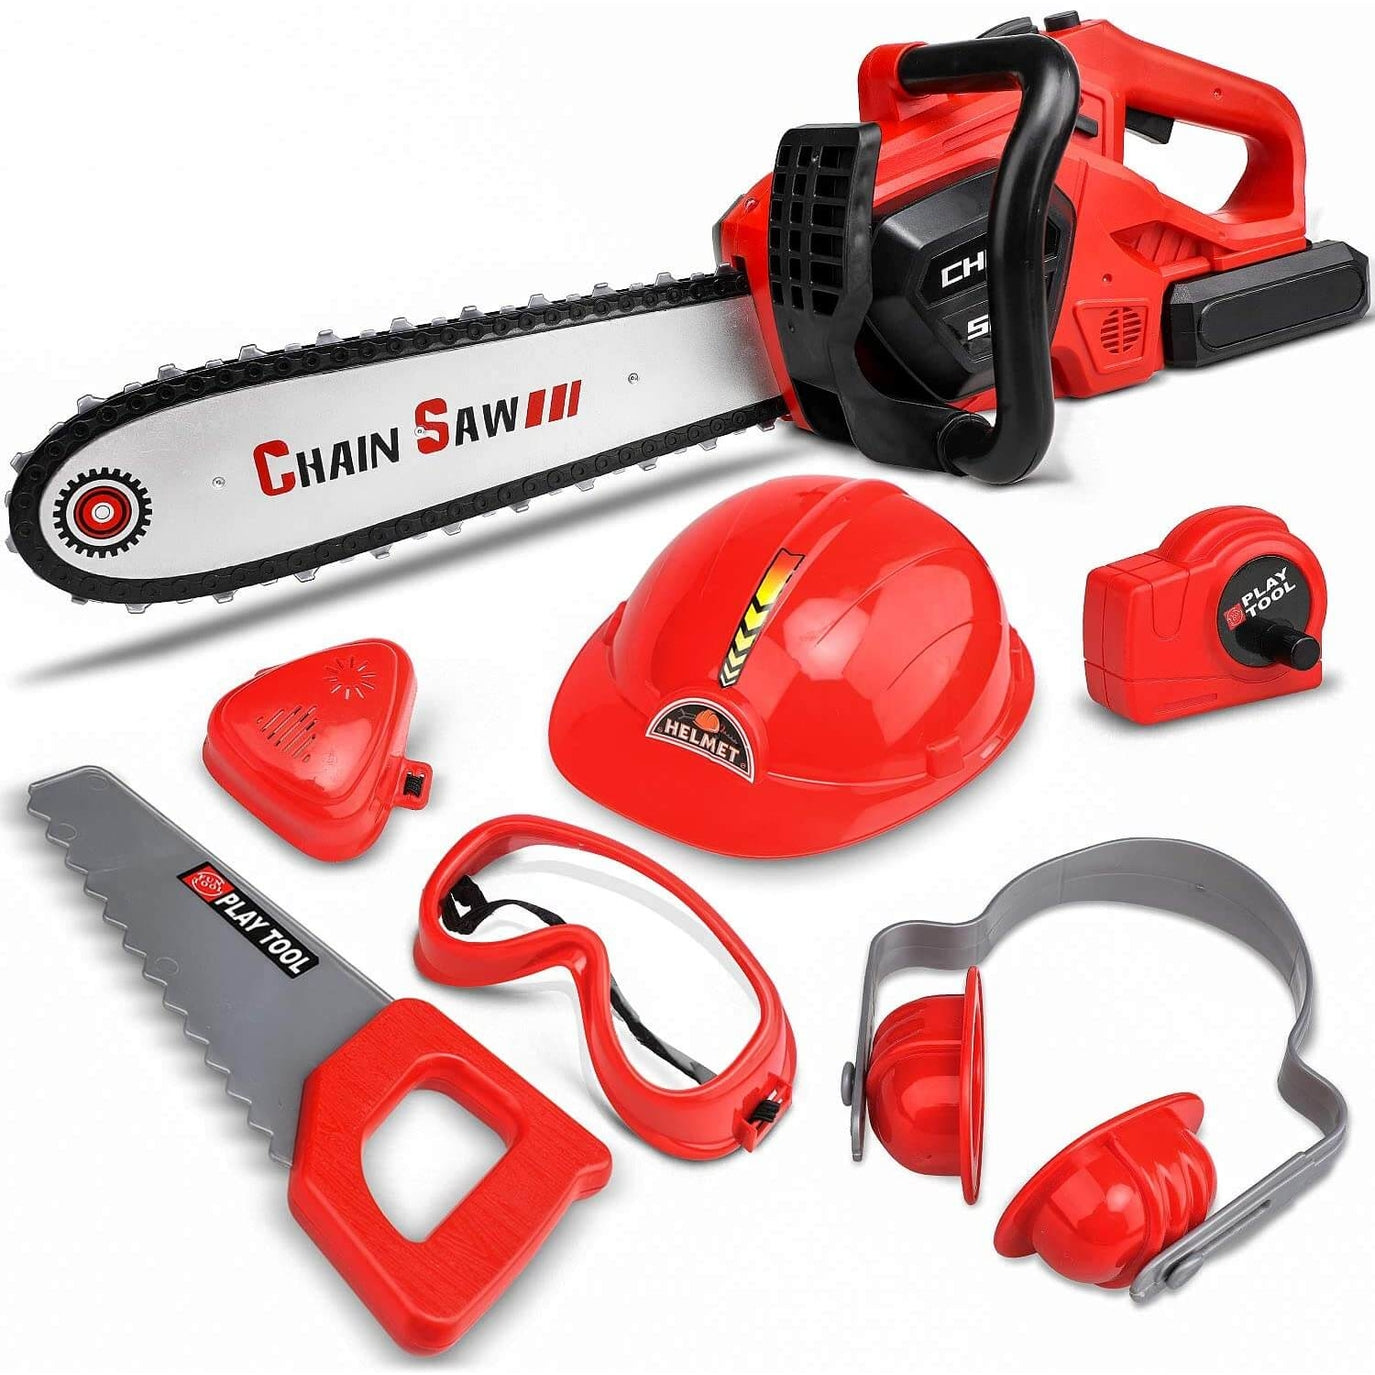 Toy Chainsaw Set